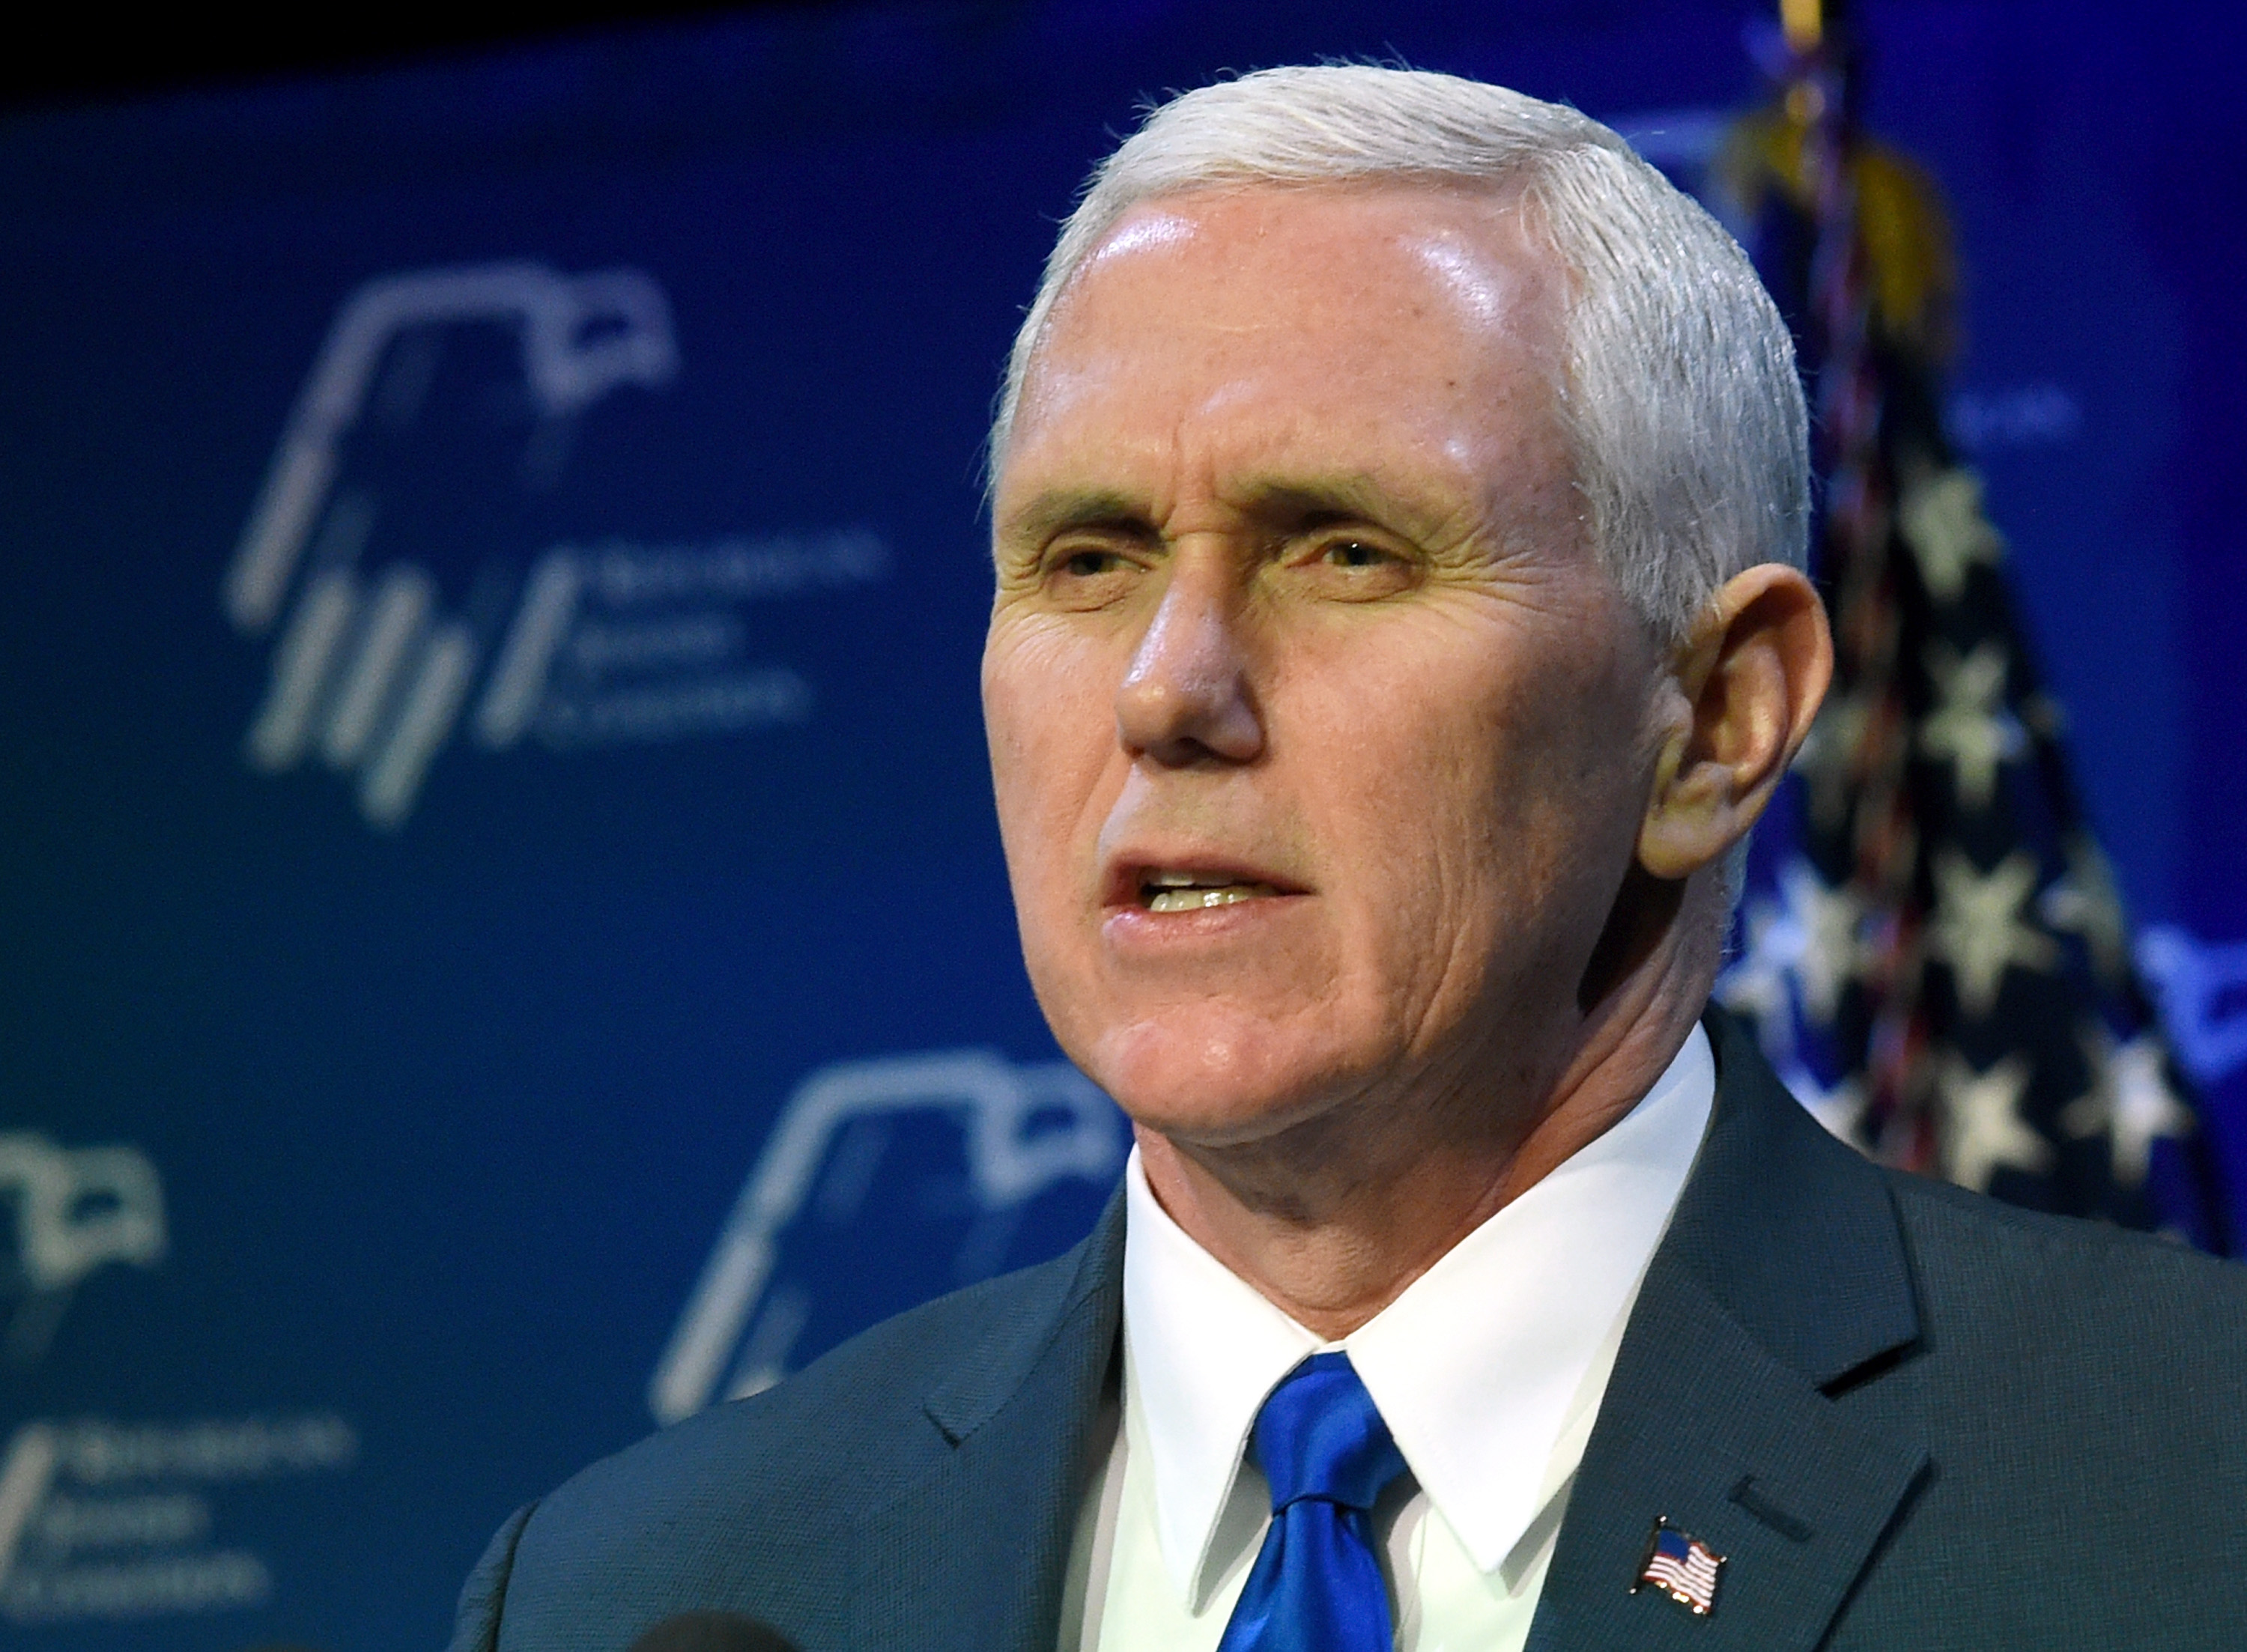 Mike Pence used his AOL email for Indiana state business — and it got hacked